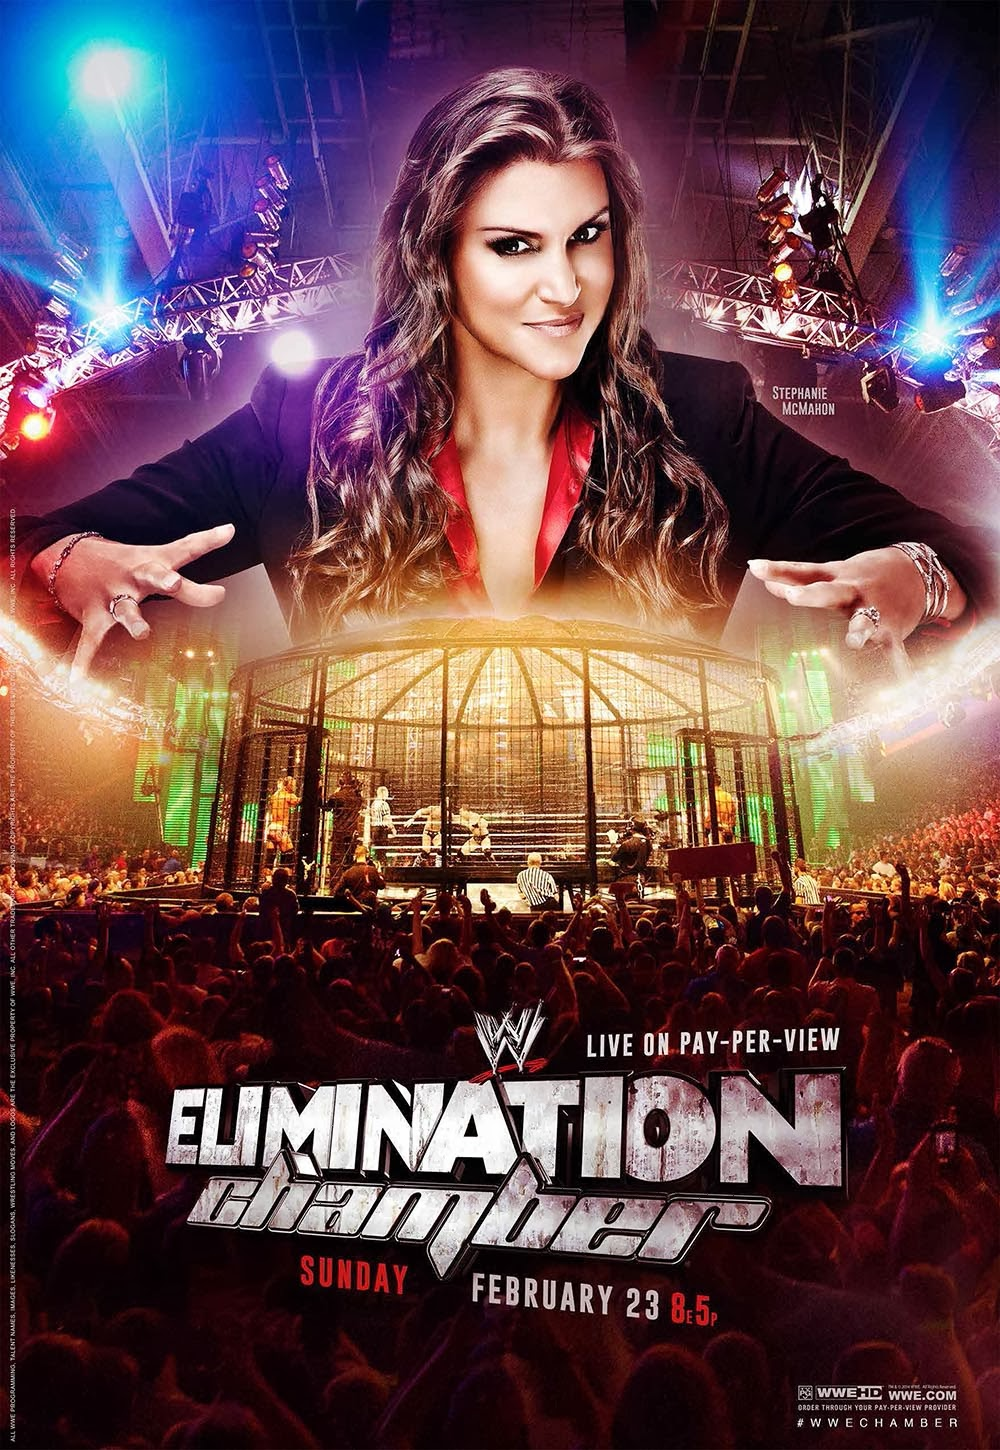 Image » Download & Print WWE Elimination Chamber 2014 HQ Official Poster (feat: Stephanie) - 3300px